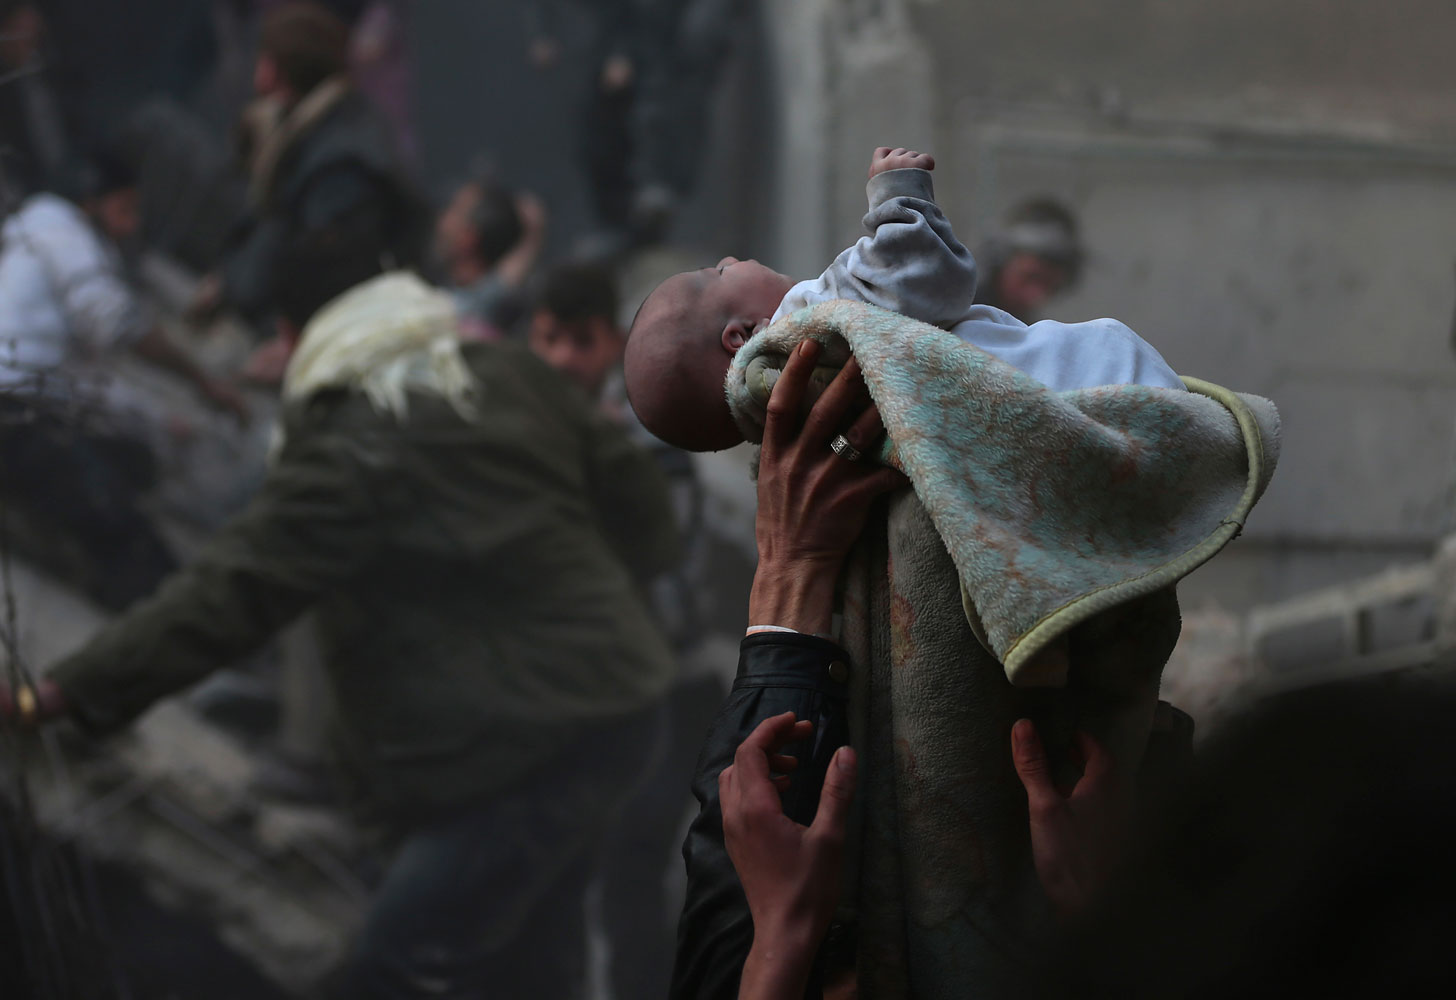 Men hold up a baby saved from under rubble, who survived what activists say was an airstrike by forces loyal to Syrian President Bashar al-Assad in the Duma neighbourhood of Damascus, Jan. 7, 2014.